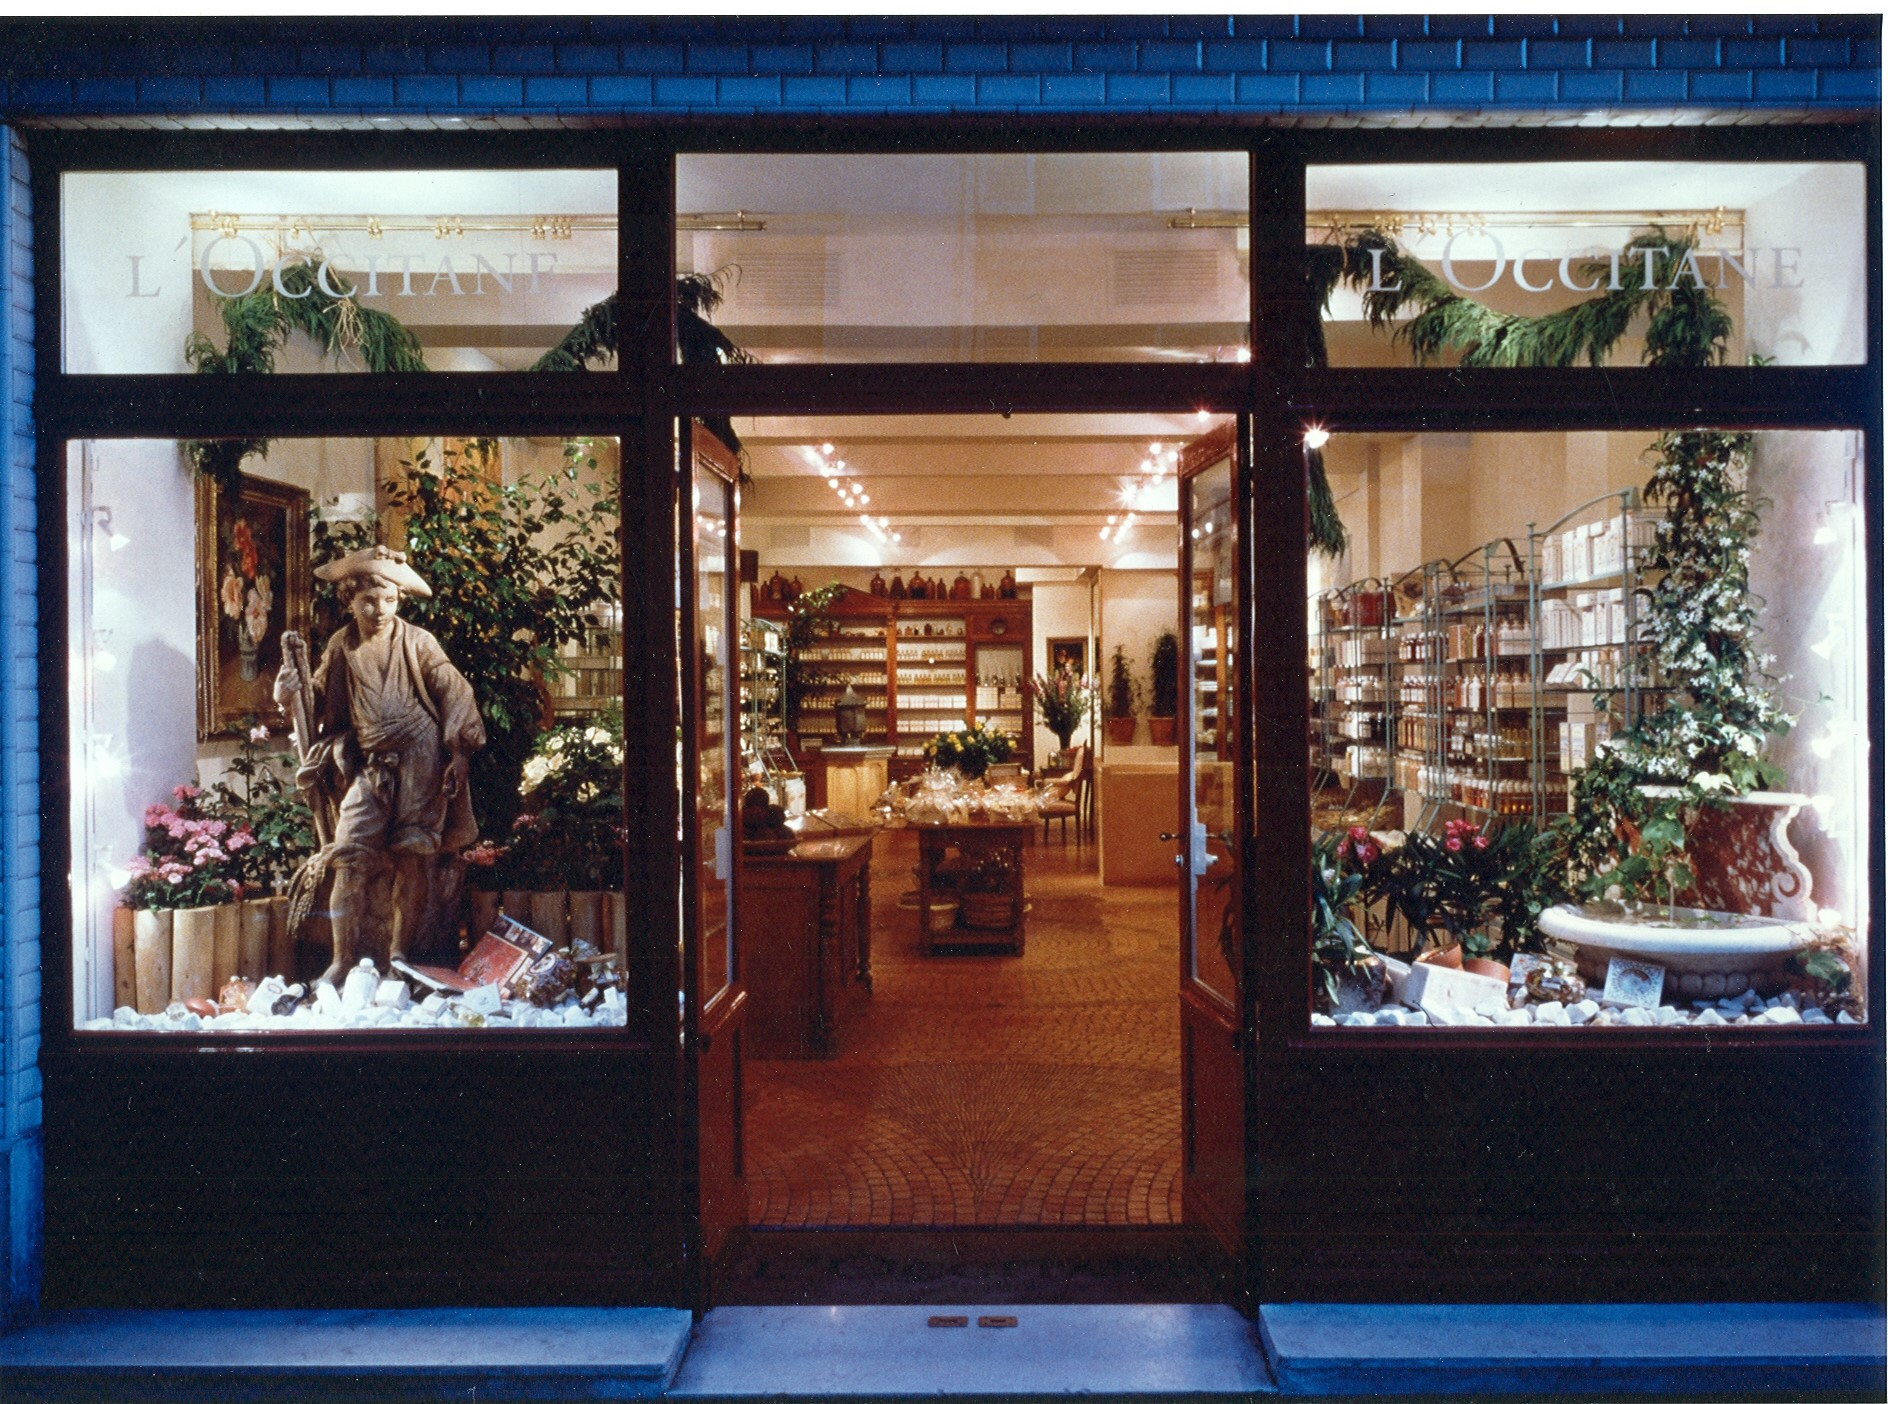 early key store for L'Occitane in Paris